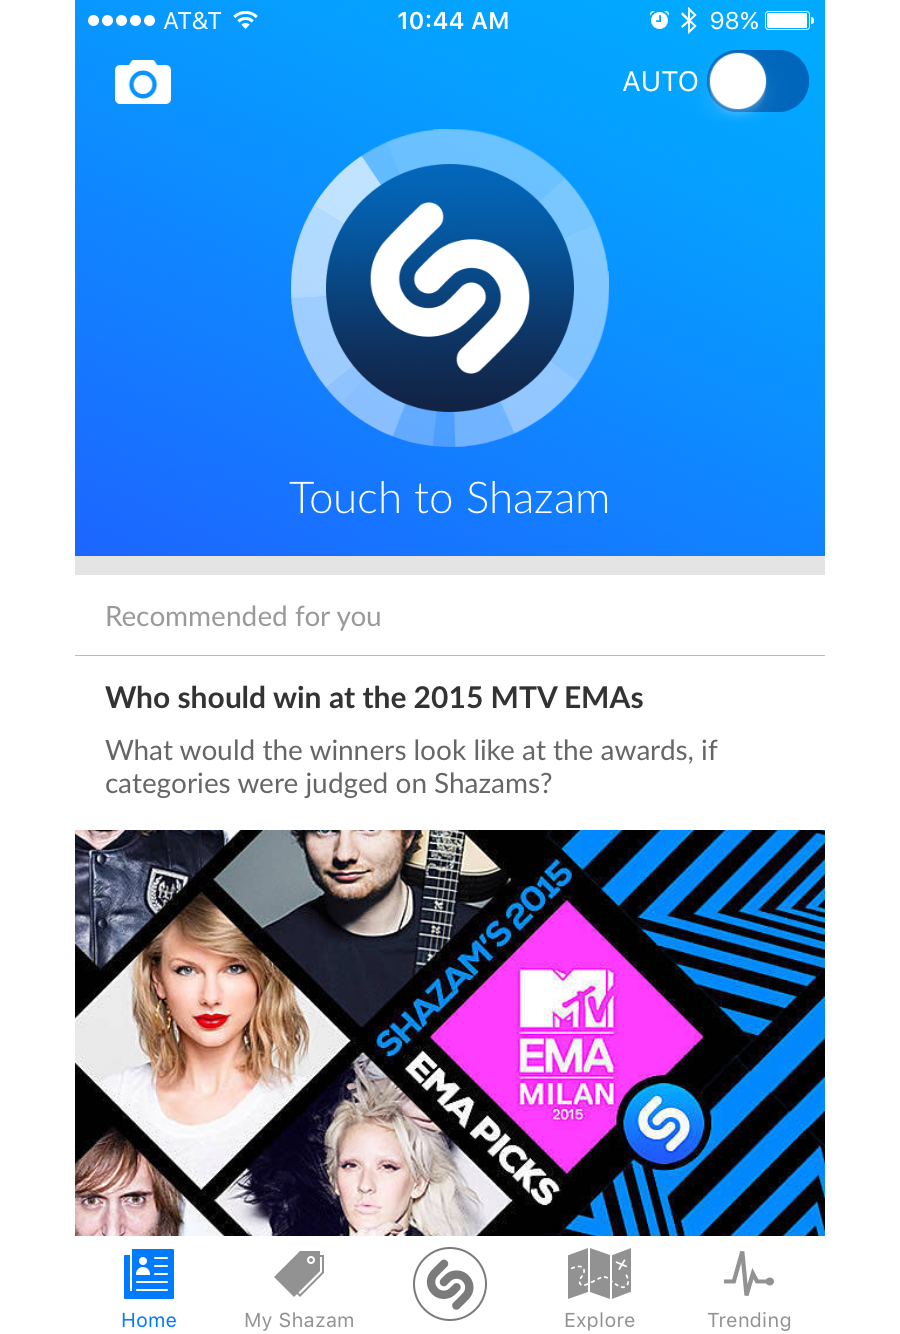 """Evernote (left) nudges the user to try its premium features.Shazam (right) allocates almost half of the screen to highlight the key user action """"Touch to Shazam""""."""